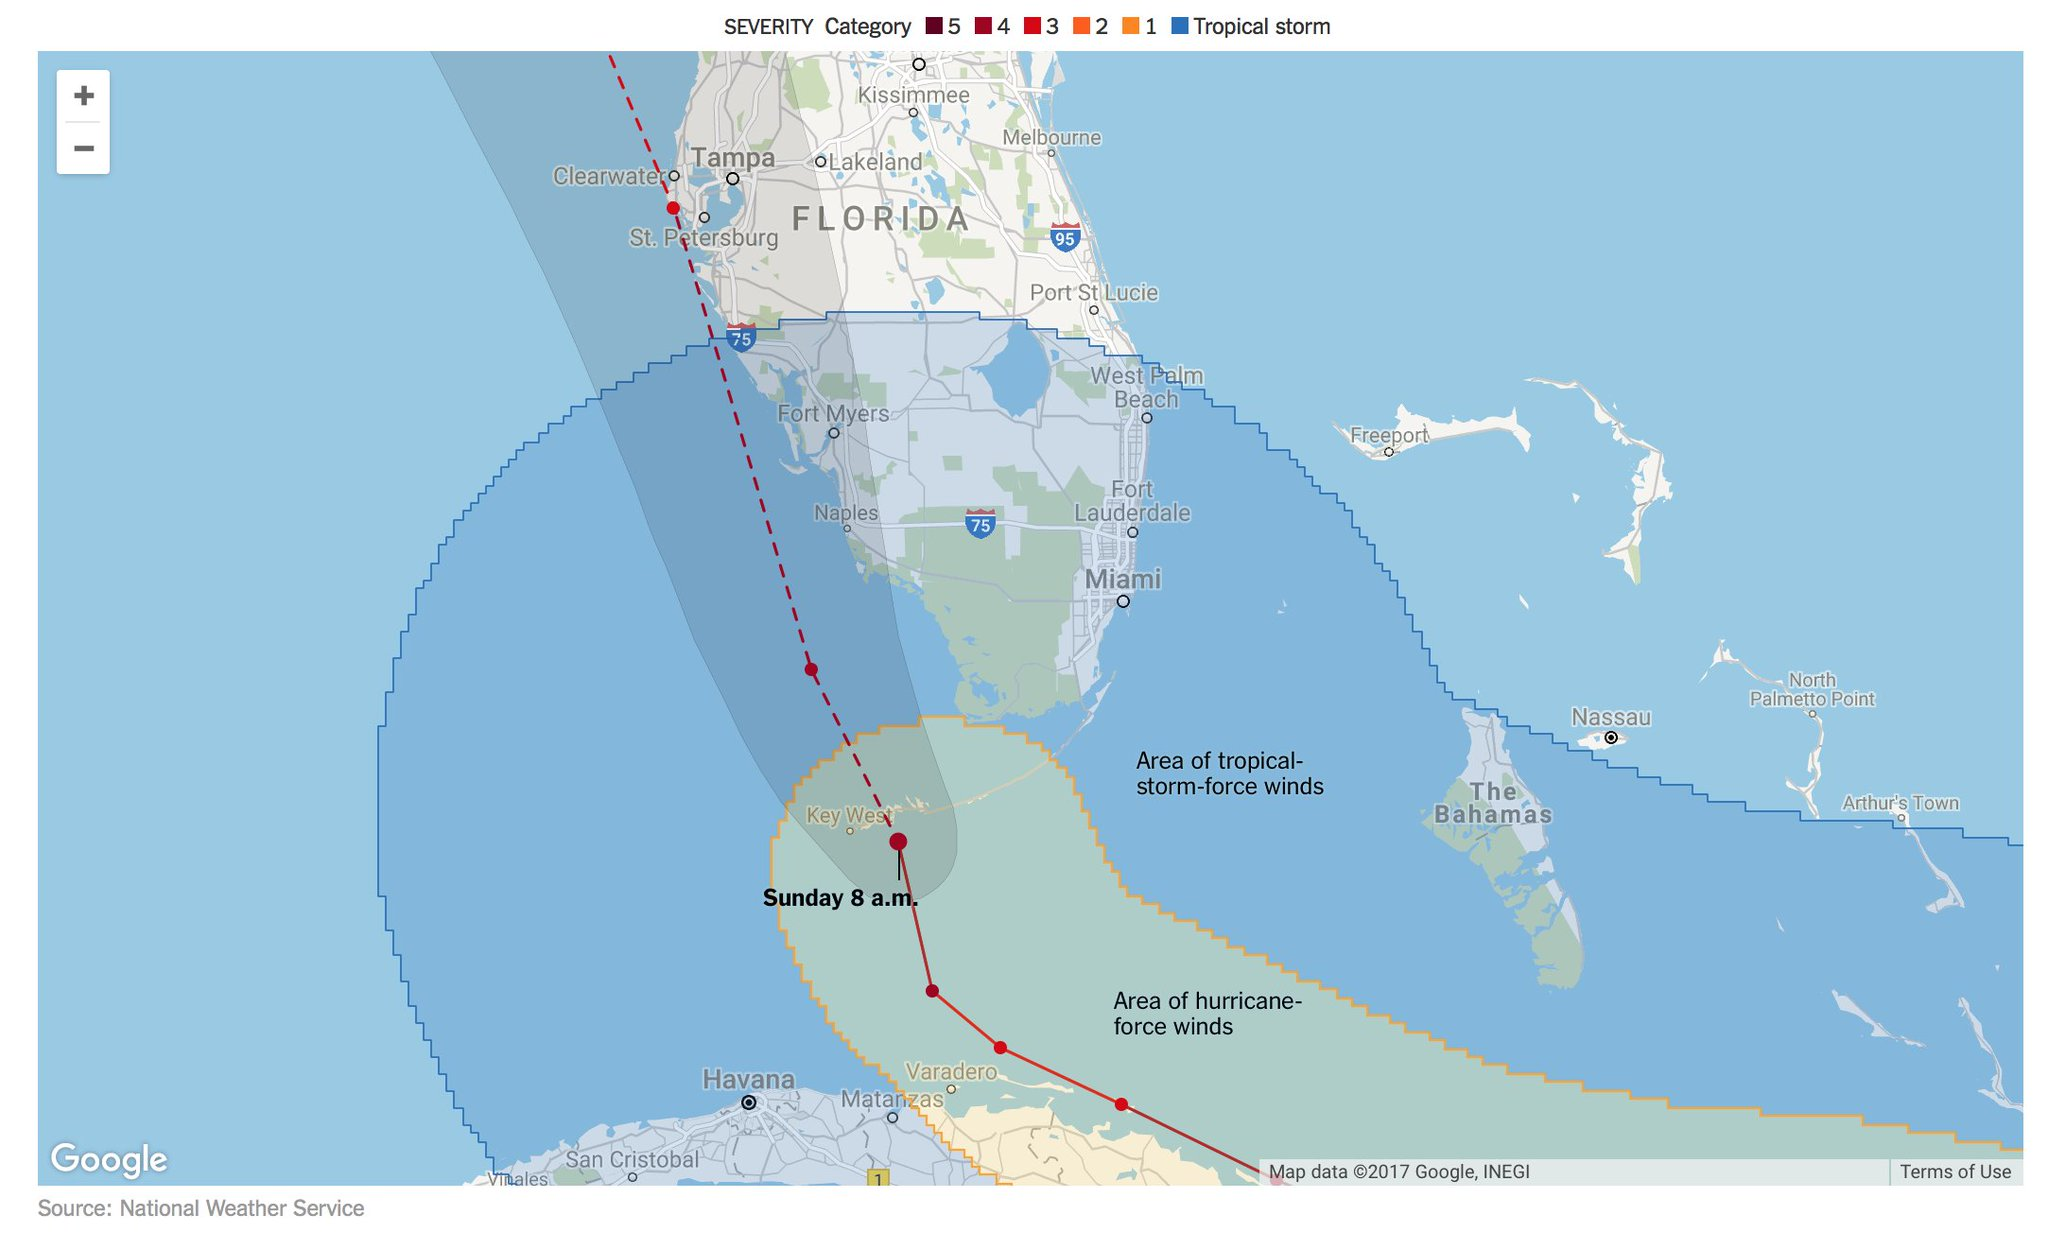 Maps: Track the path of Hurricane Irma https://t.co/IUA5ayisku https://t.co/RpPhSWBcT9